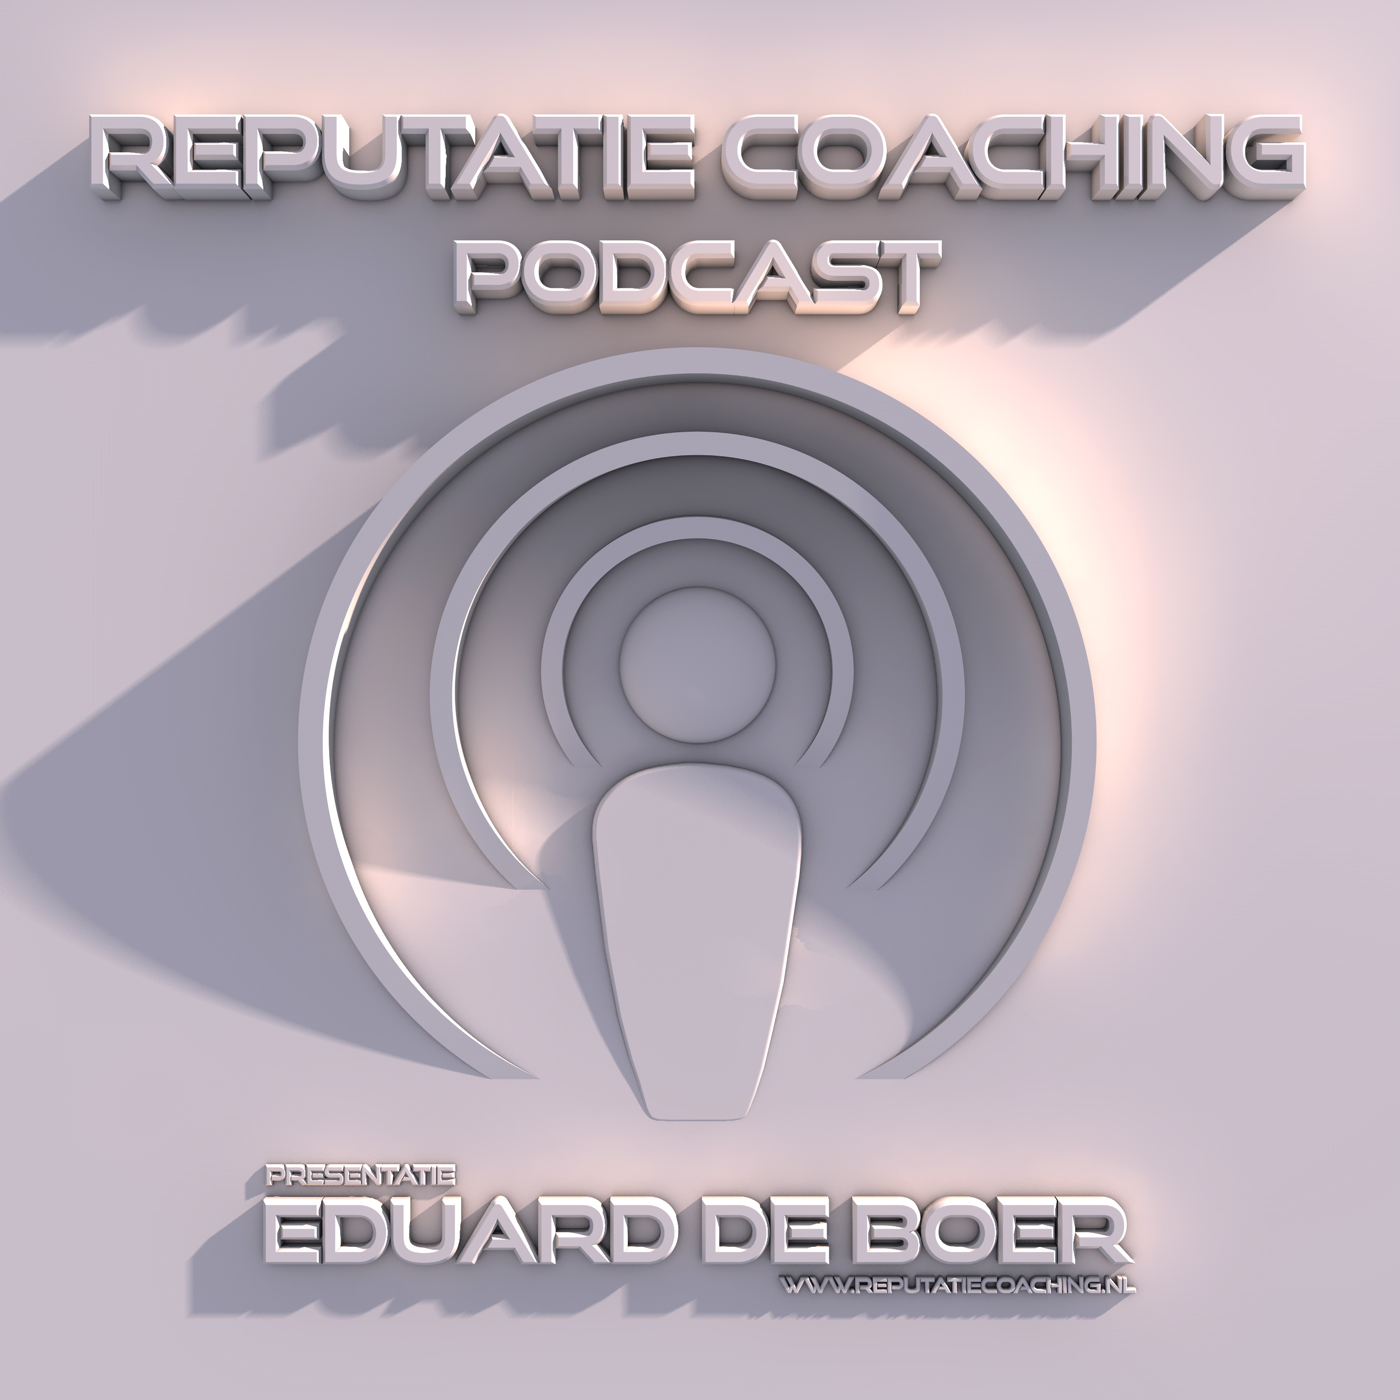 ReputatieCoaching Podcast: Online Reputatiemanagement | Internet Marketing | Content Marketing en Lokale SEO